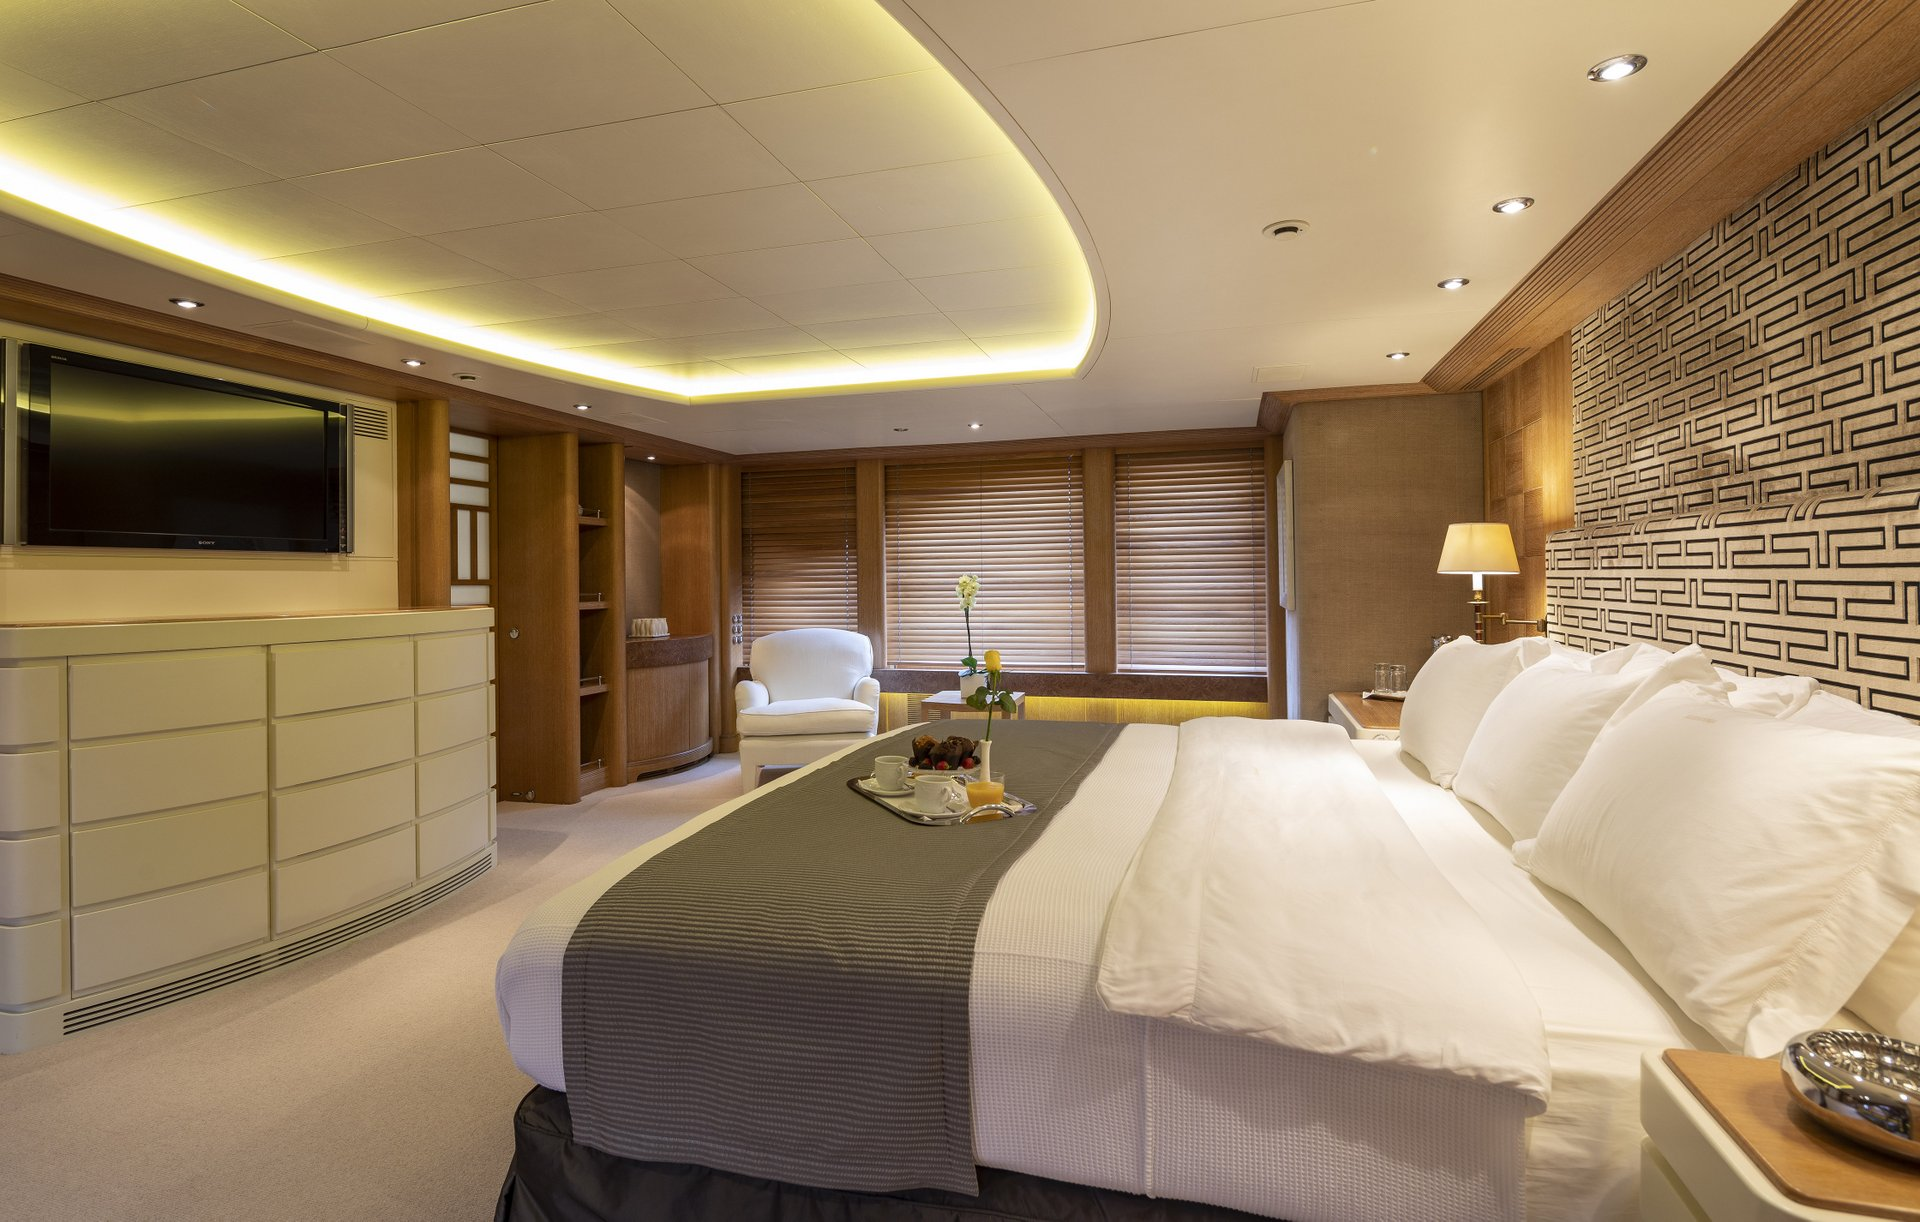 m/y alexandra yacht for charter master suite bed